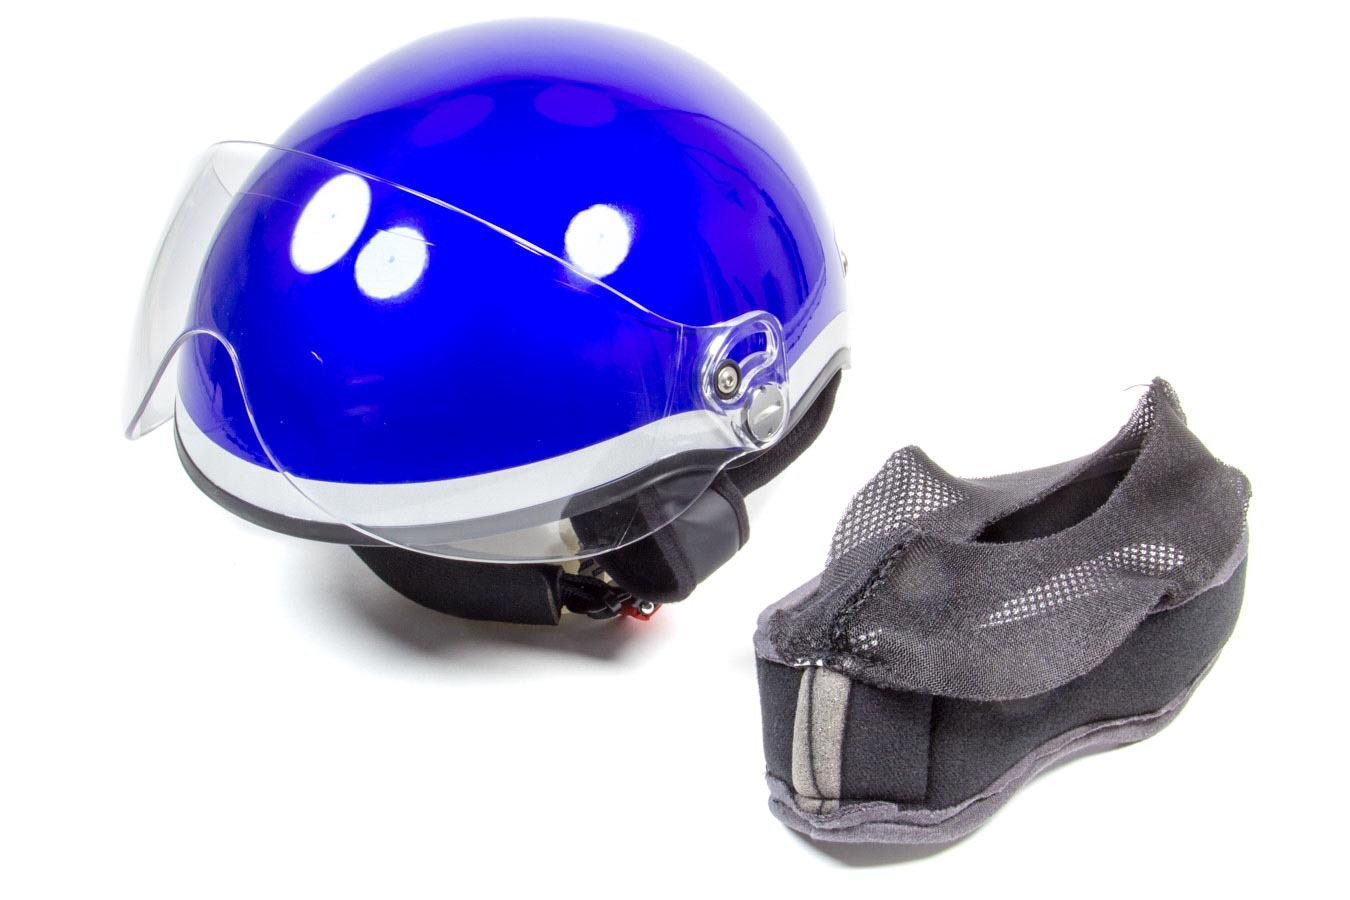 Head Pro Tech 1003 Helmet, EMT1, Royal Blue, 3X-Small to X-Small, Each